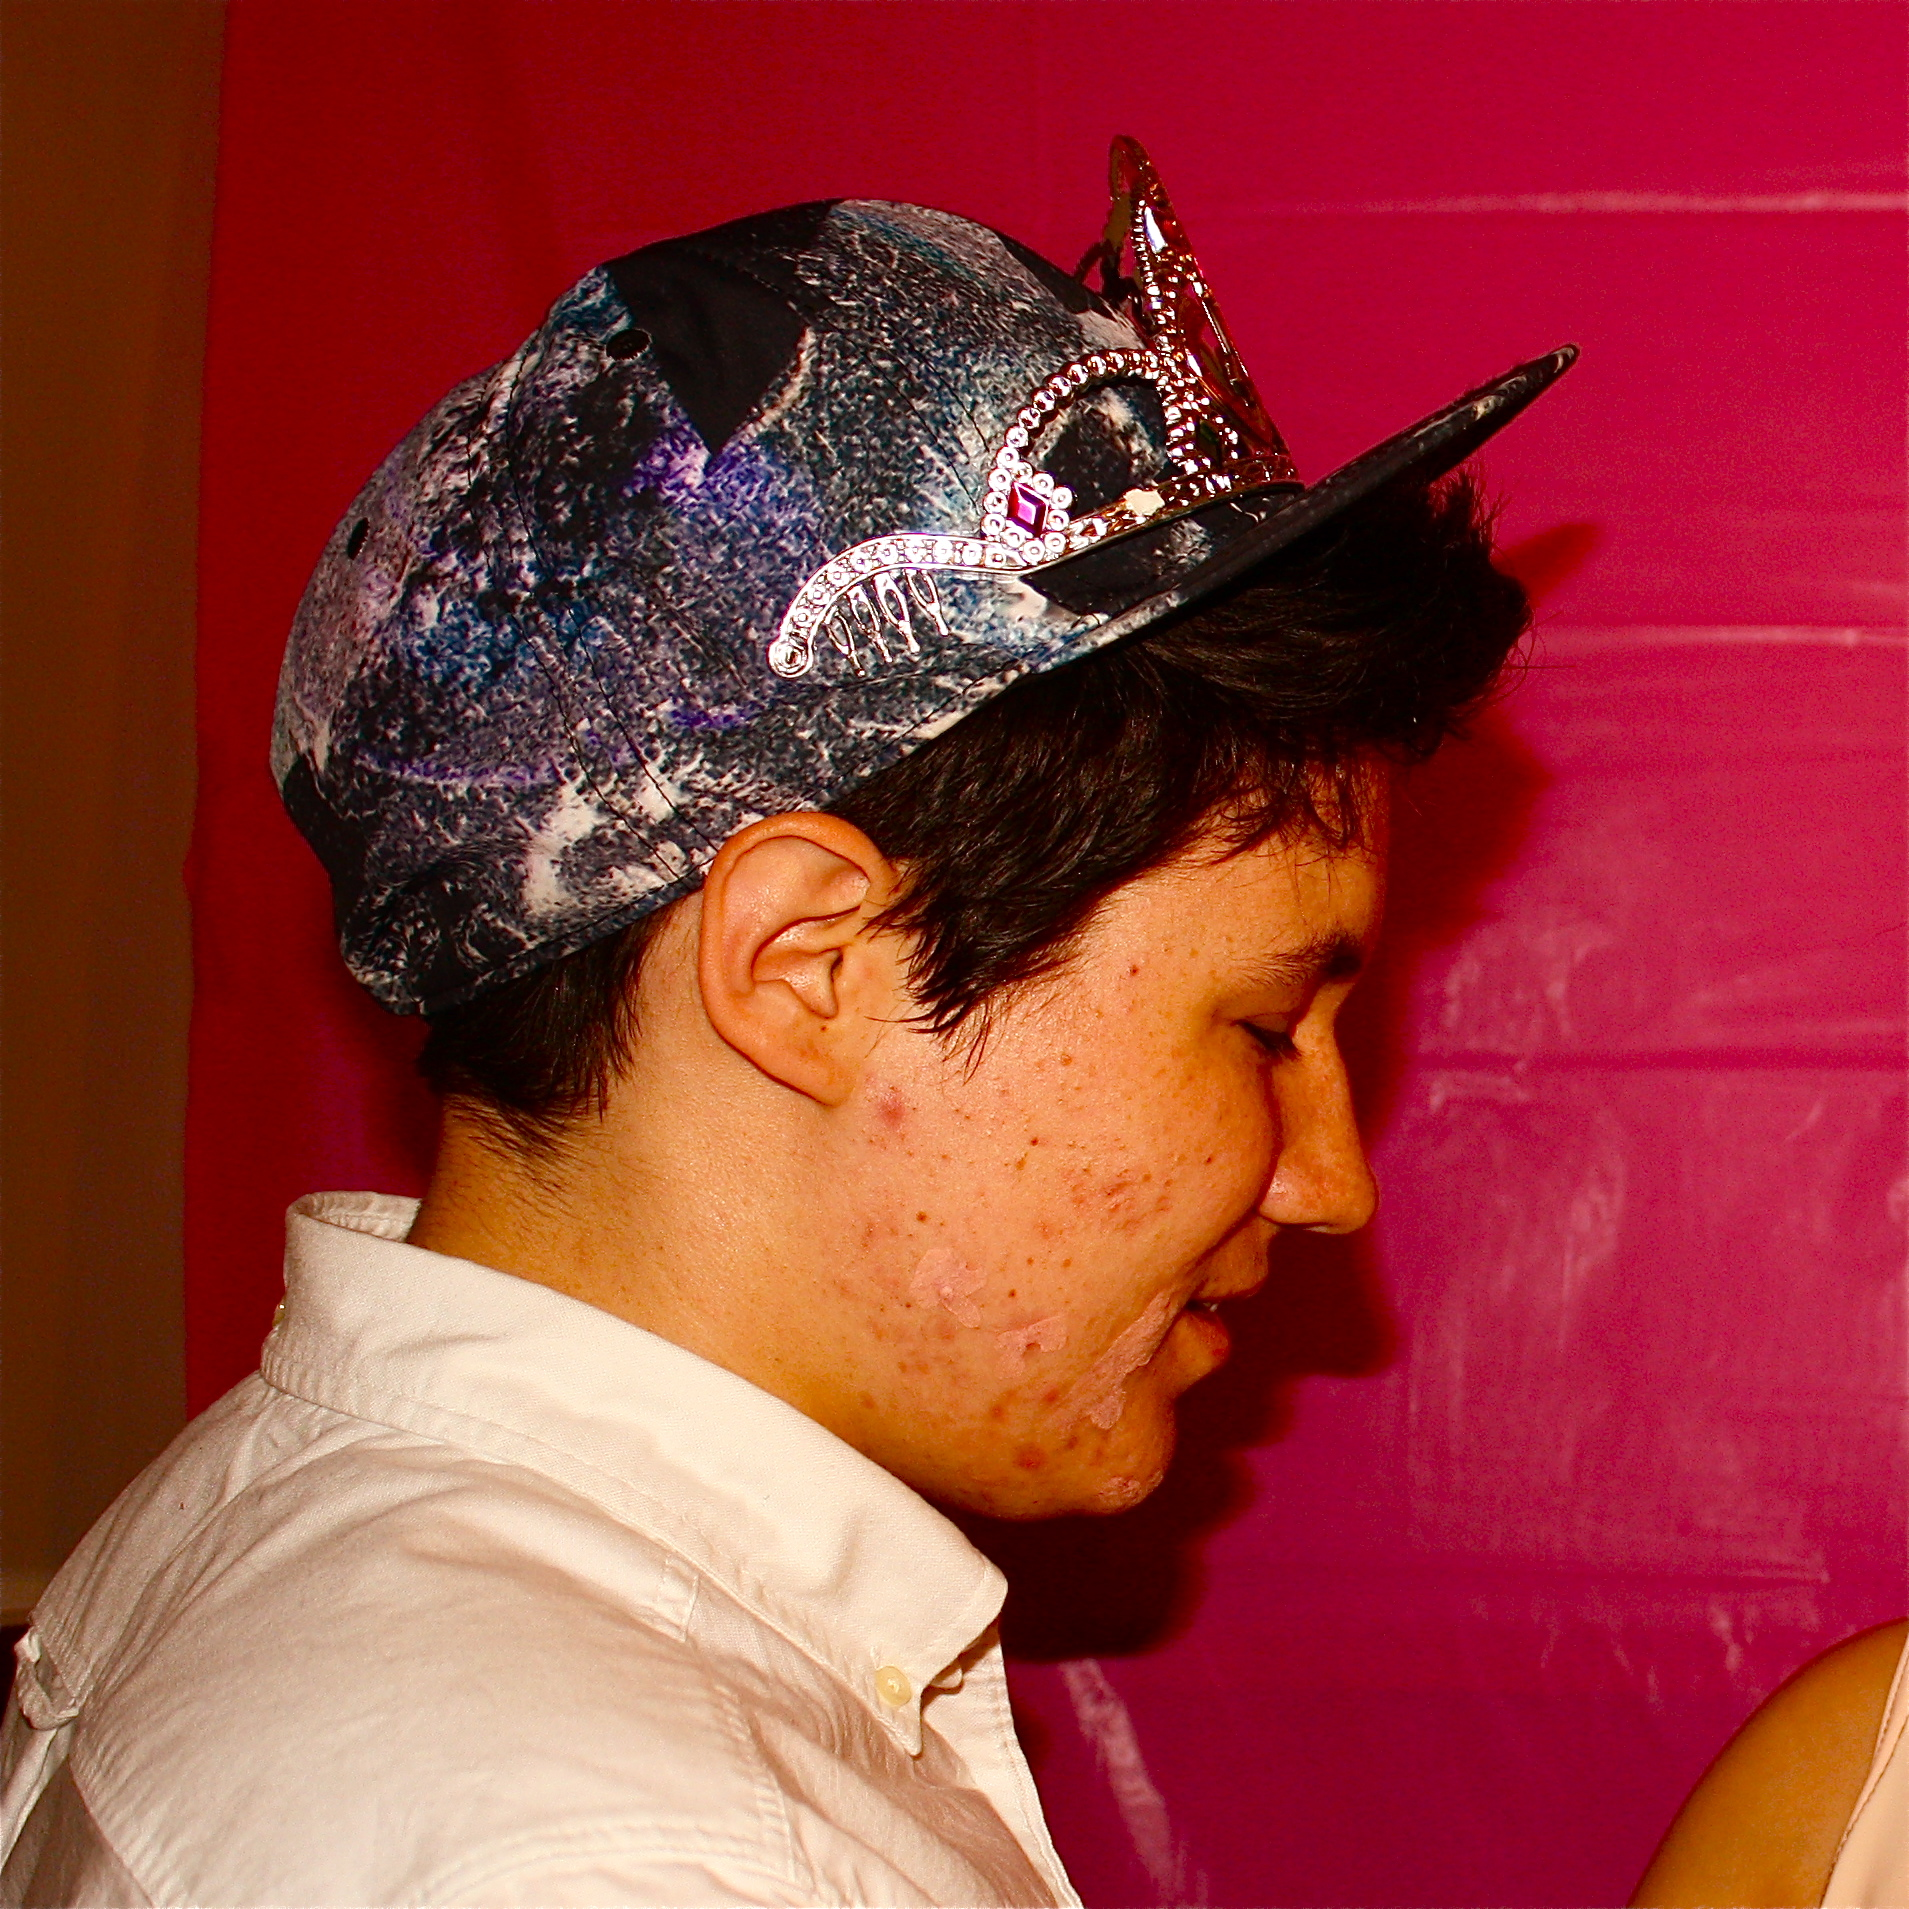 i hope you all appreciate that i am putting the most unattractive picture of myself on the internet